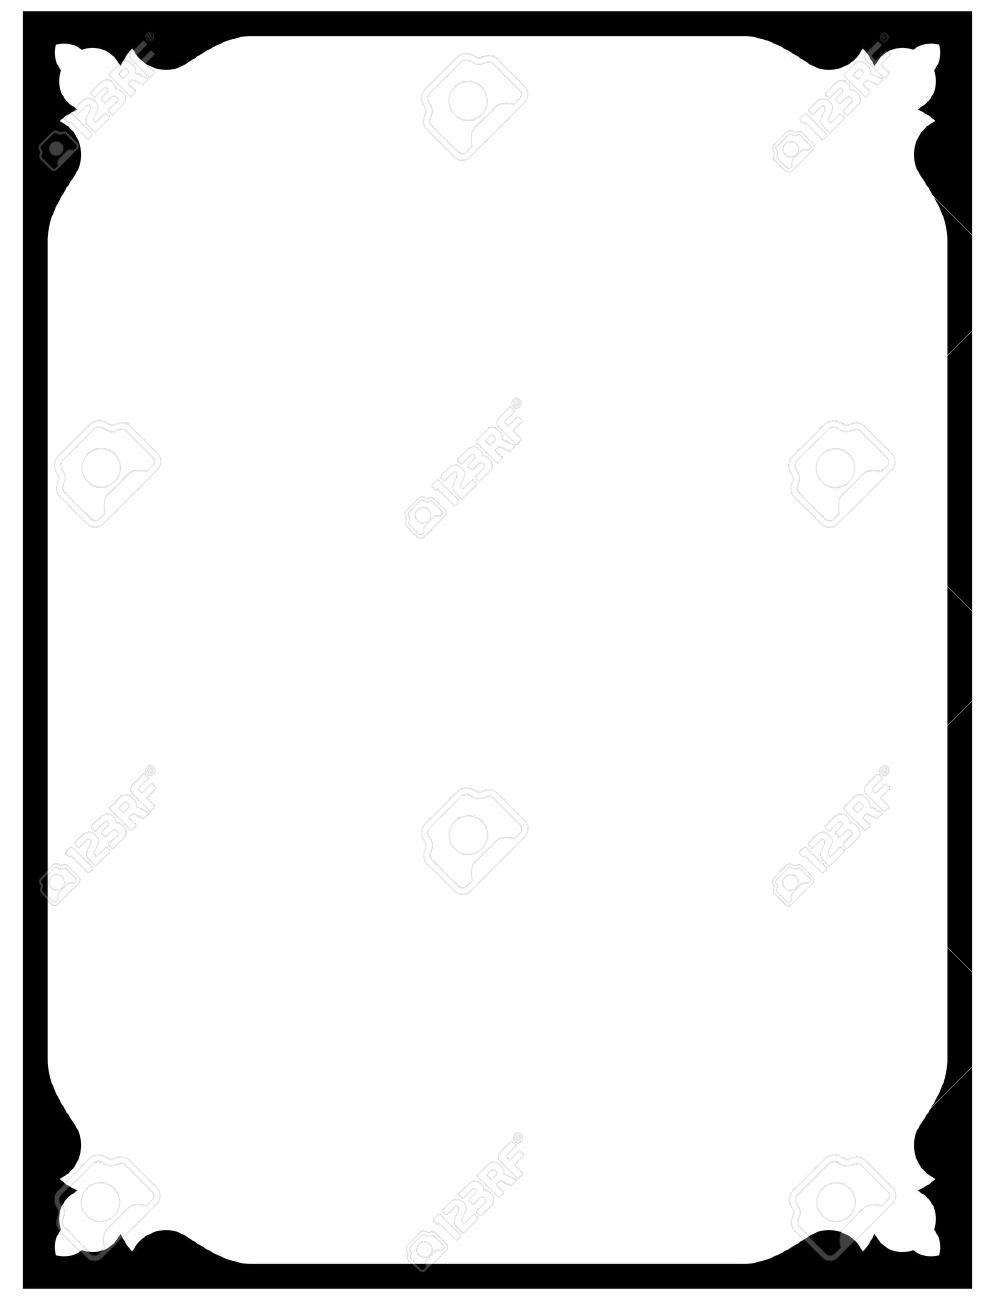 995x1300 Isolated Frame Clipart, Explore Pictures